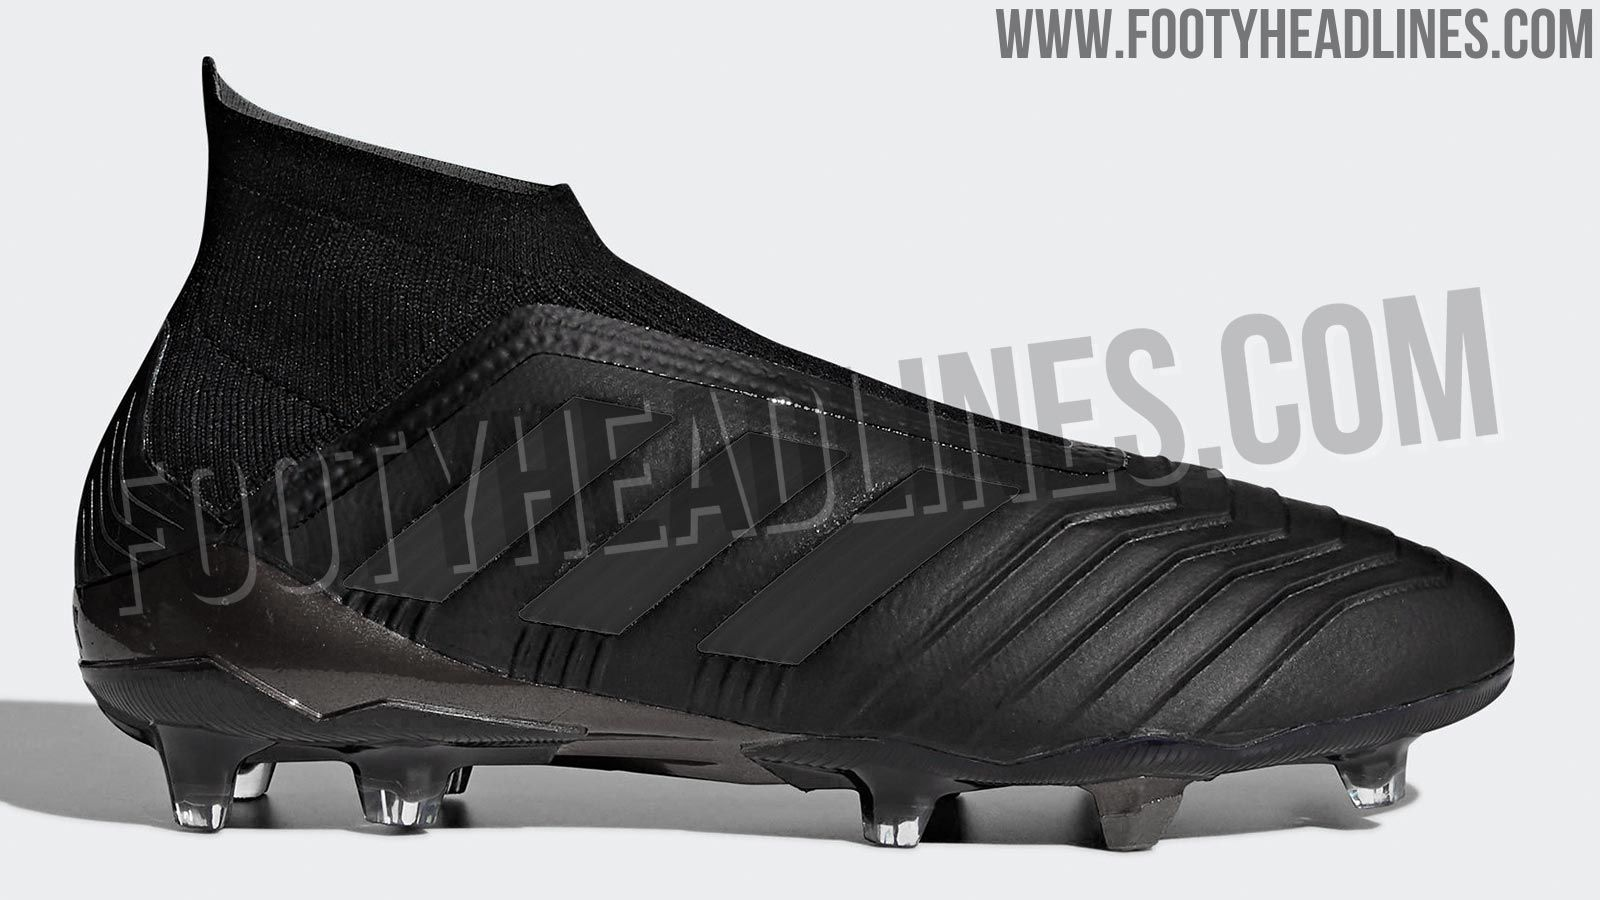 The Adidas Predator 18+ Nitecrawler football boots introduce a stealth look  to the latest iteration